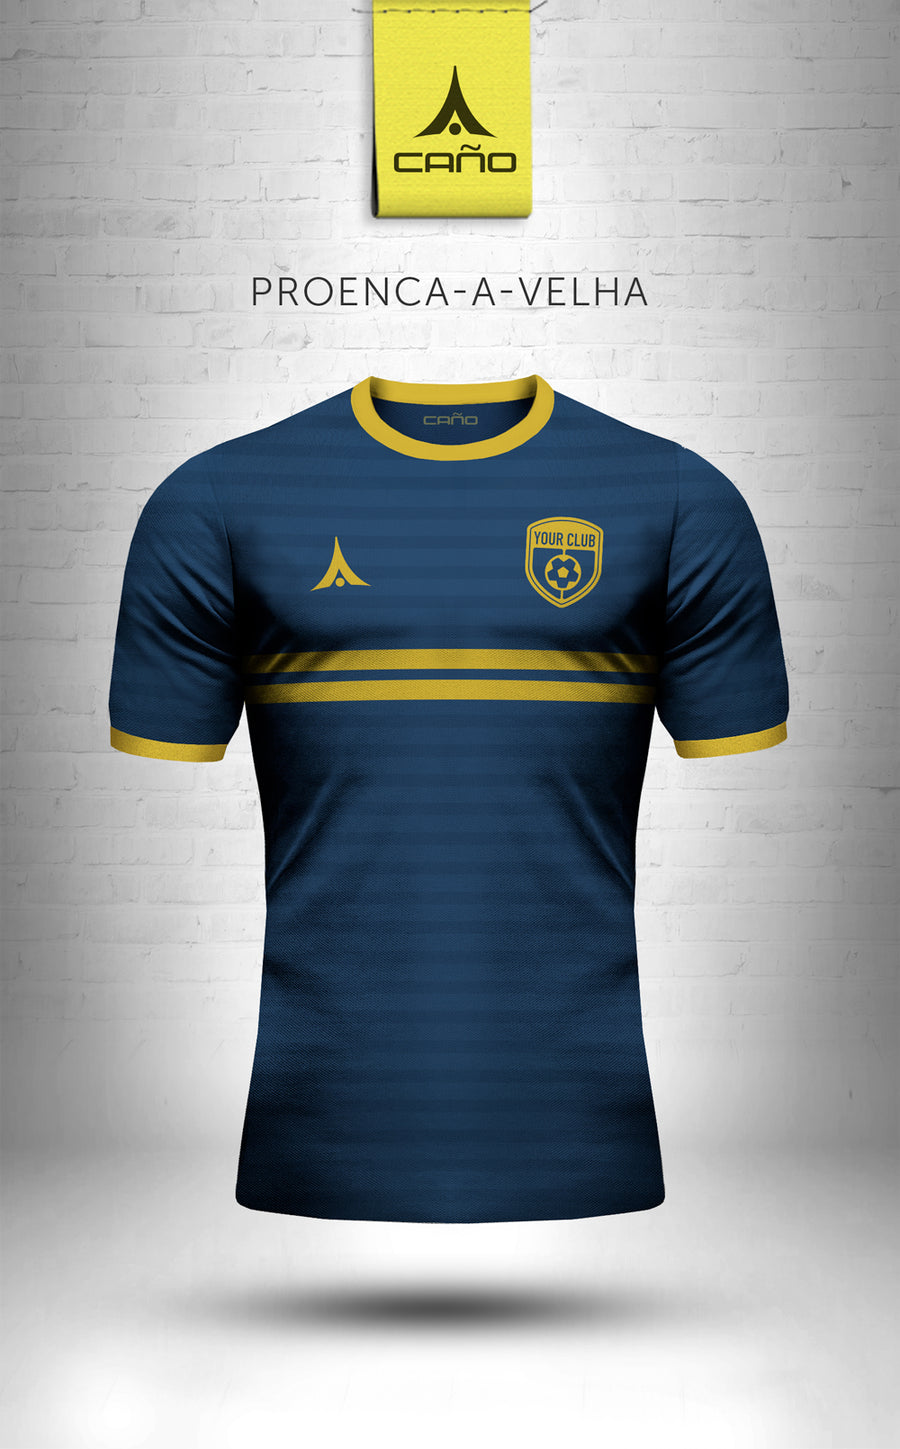 Proenca-a-Velha in navy/gold